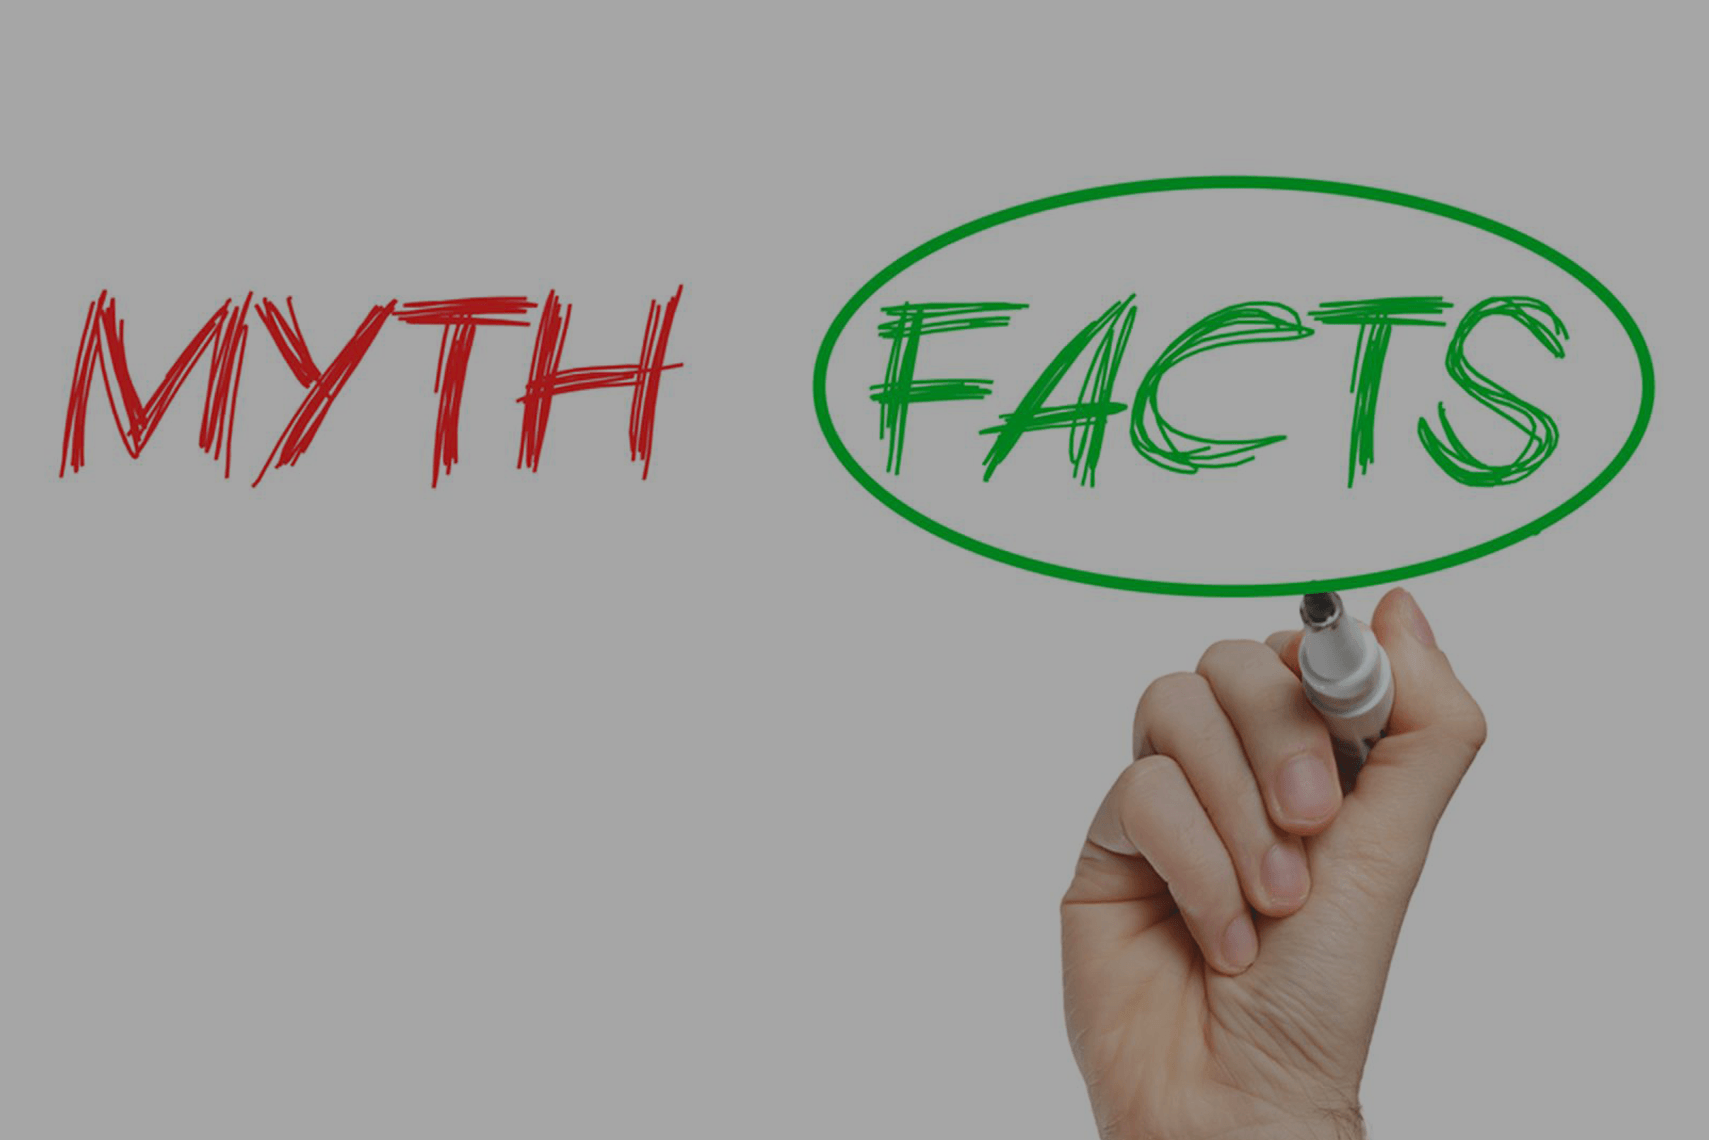 challenging misconceptions associated with hypnosis Fact: hypnosis is very safe and is in fact, a state of hyper-awareness any time there is an emergency, a person would naturally be able to come out of the hypnotic state by opening their eyes, and stretching or speaking.